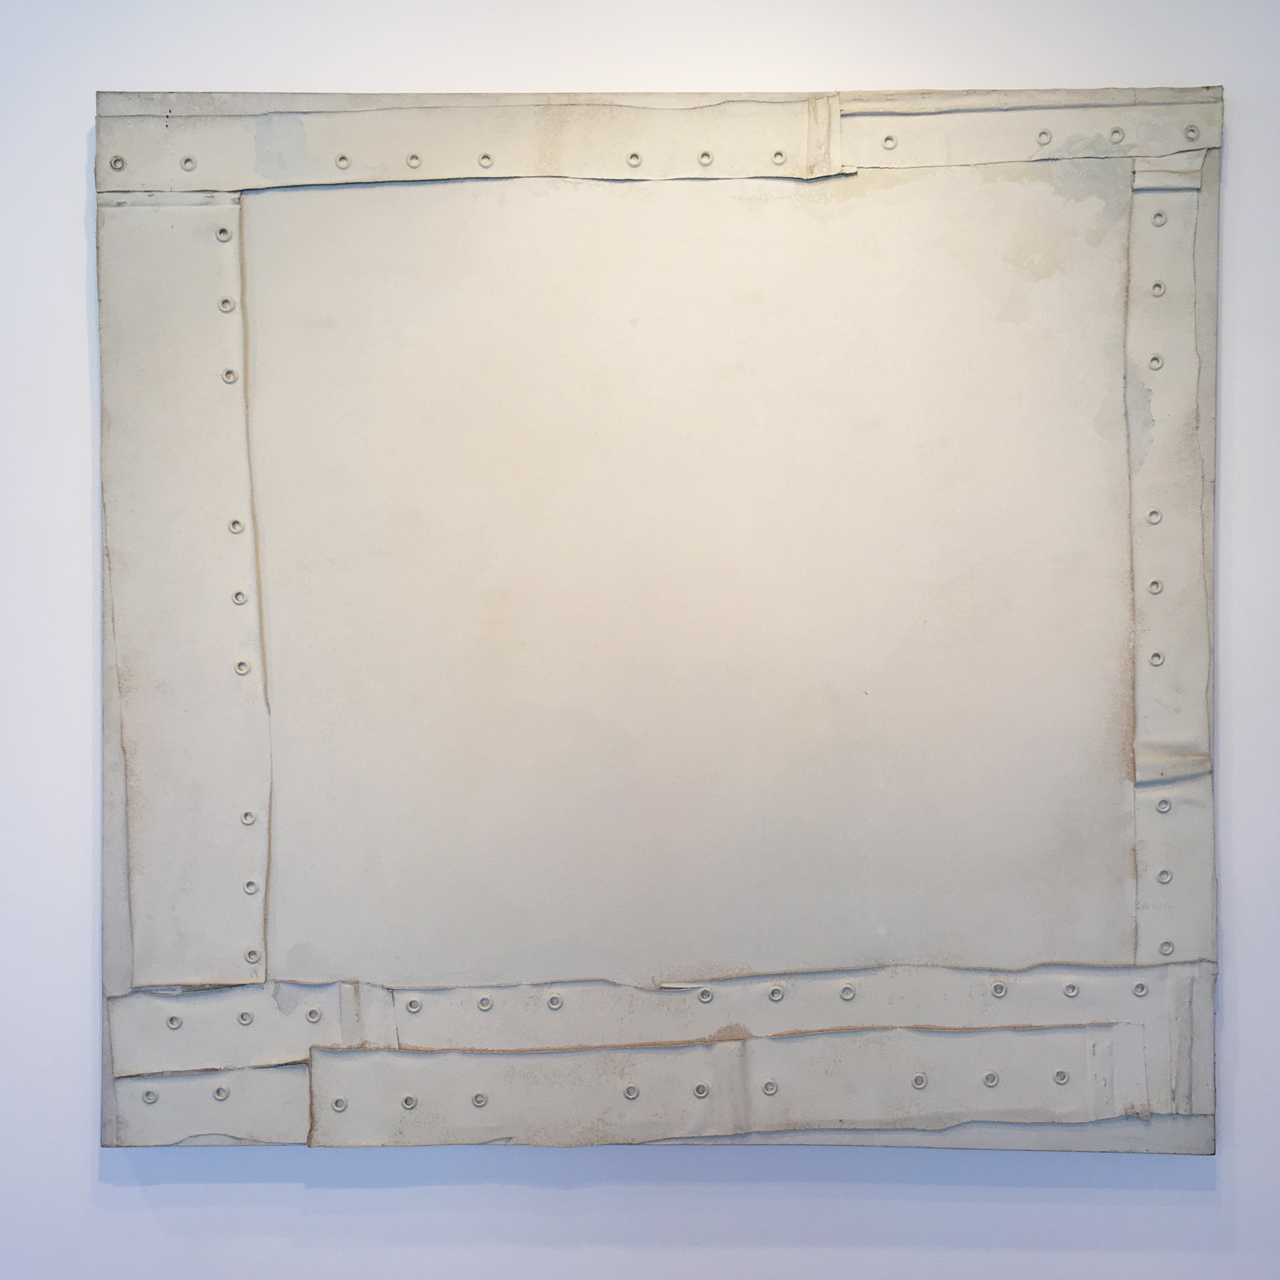 """""""Untitled"""" (1972), Oil, gesso, canvas, collage, and metal on canvas, 64.75 x 68 in. (Image courtesy the author for Hyperallergic)"""